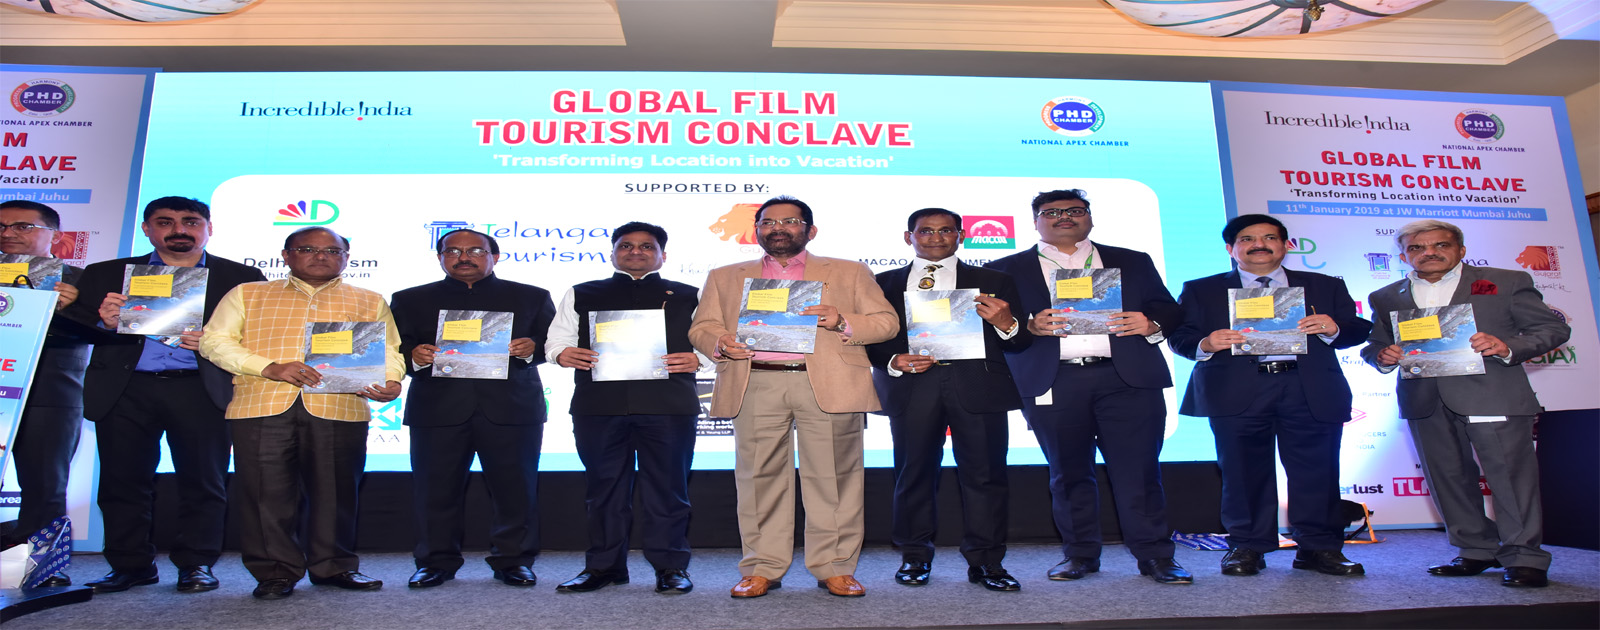 Global Film Tourism Conclave 2019